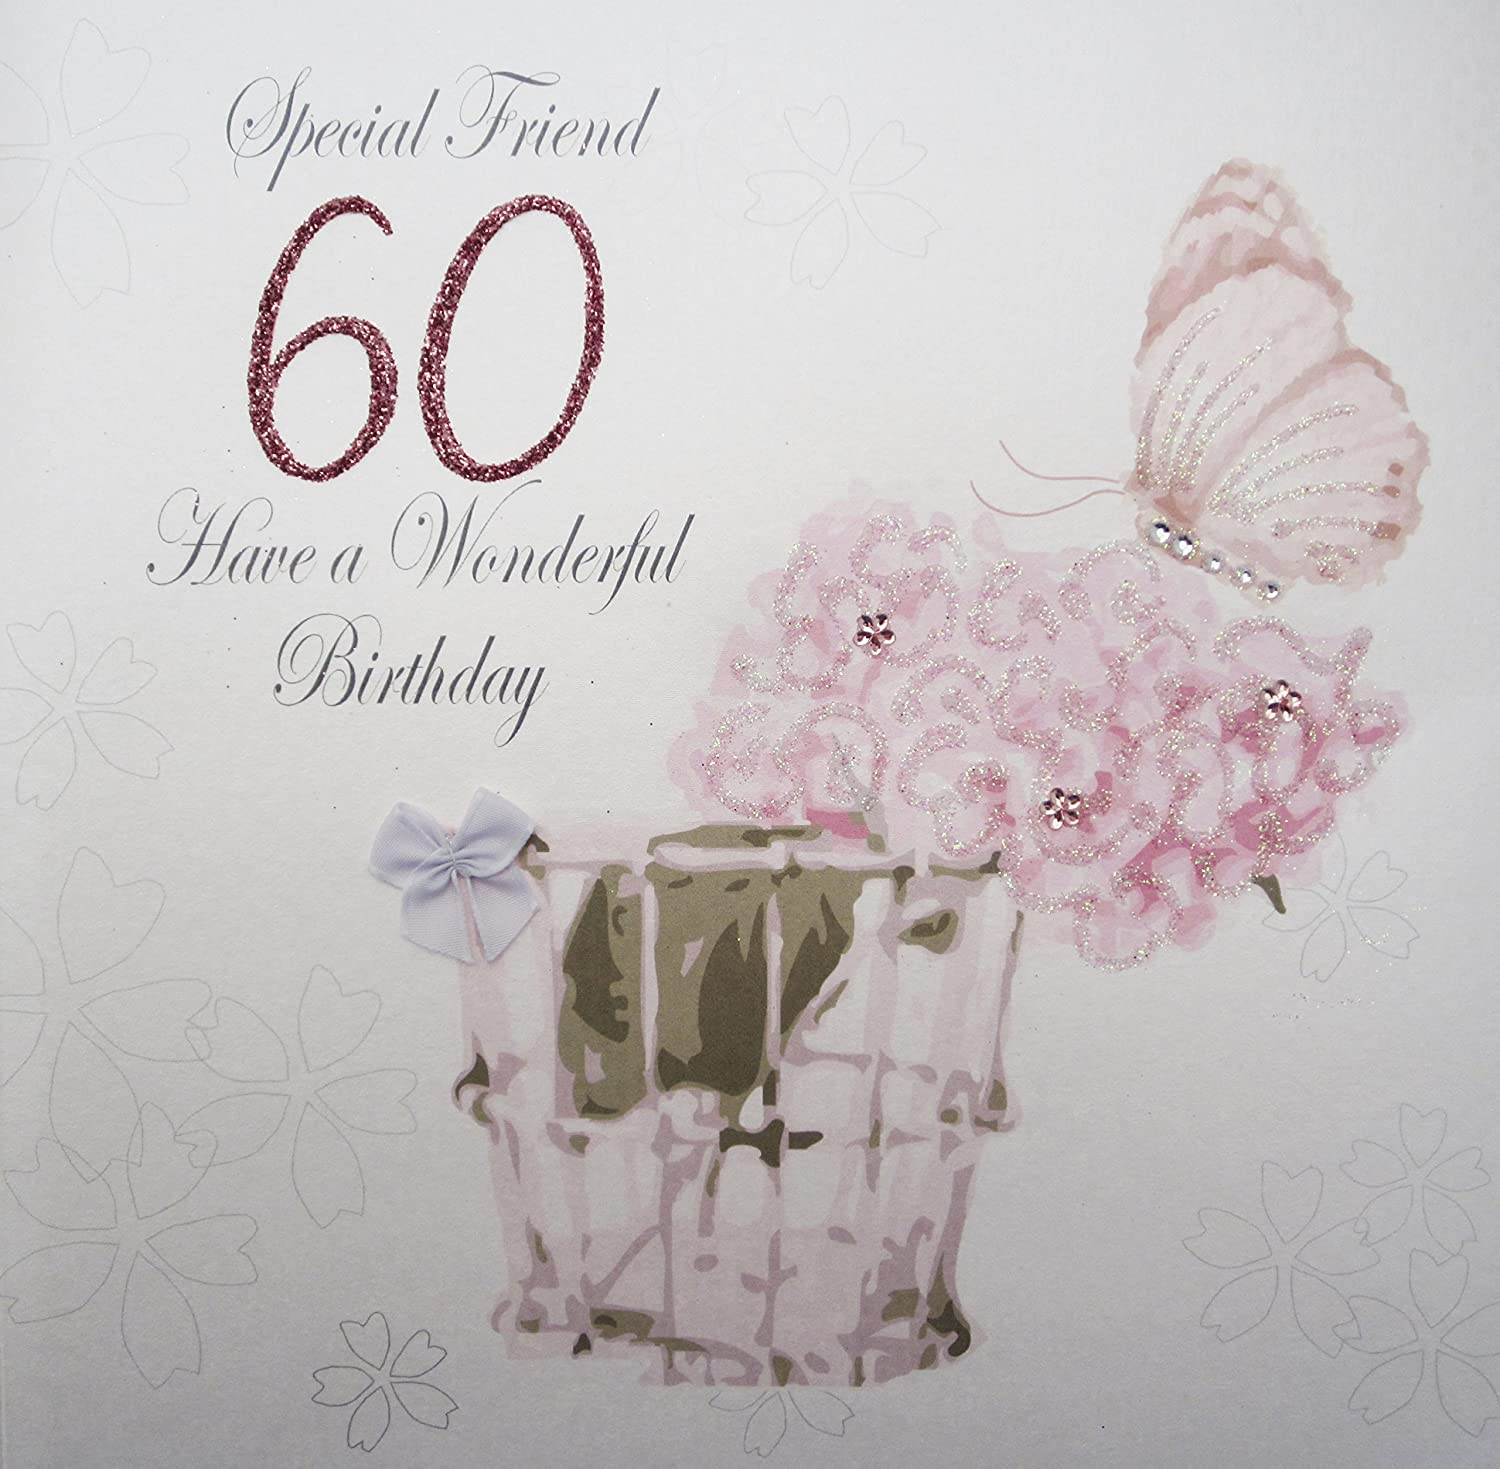 WHITE COTTON CARDS Special Friend 60 Have A Wonderful Handmade Large 60th Birthday Card Code XPDA60 F Amazoncouk Kitchen Home